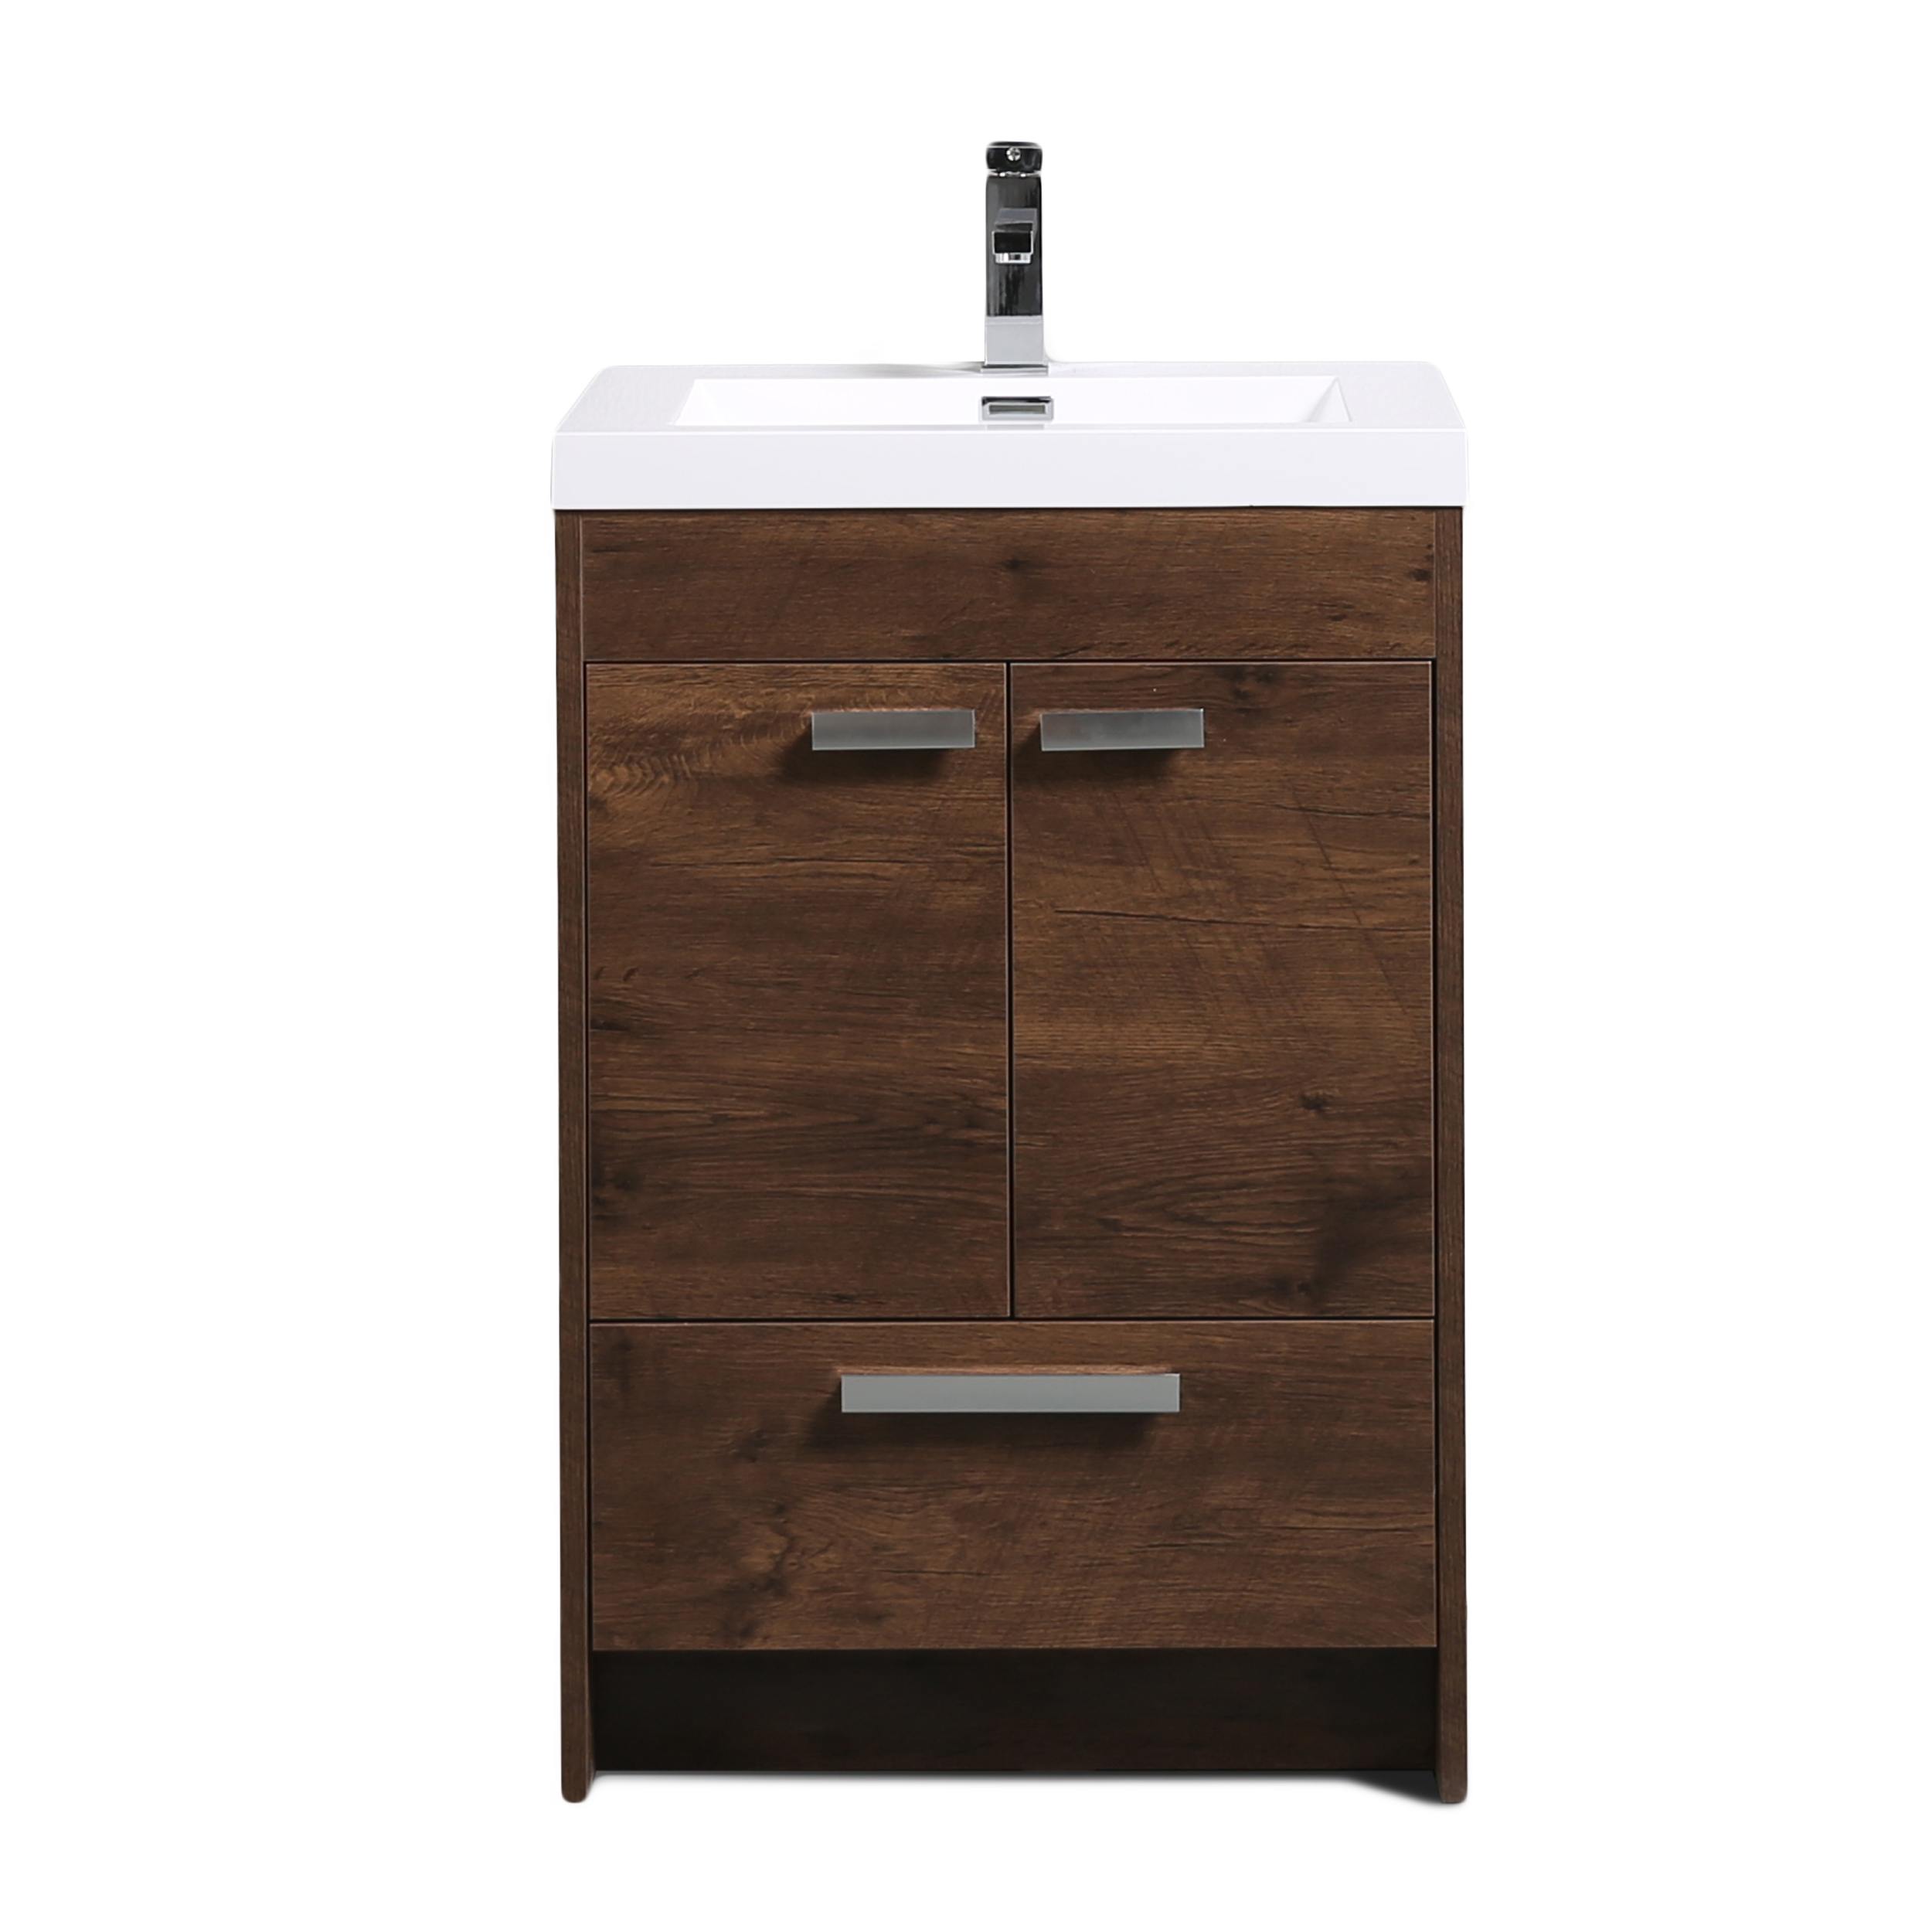 "EVVN600 8 24RSWD A Main - Eviva Lugano 24"" Rosewood Modern Bathroom Vanity with White Integrated Acrylic Sink"